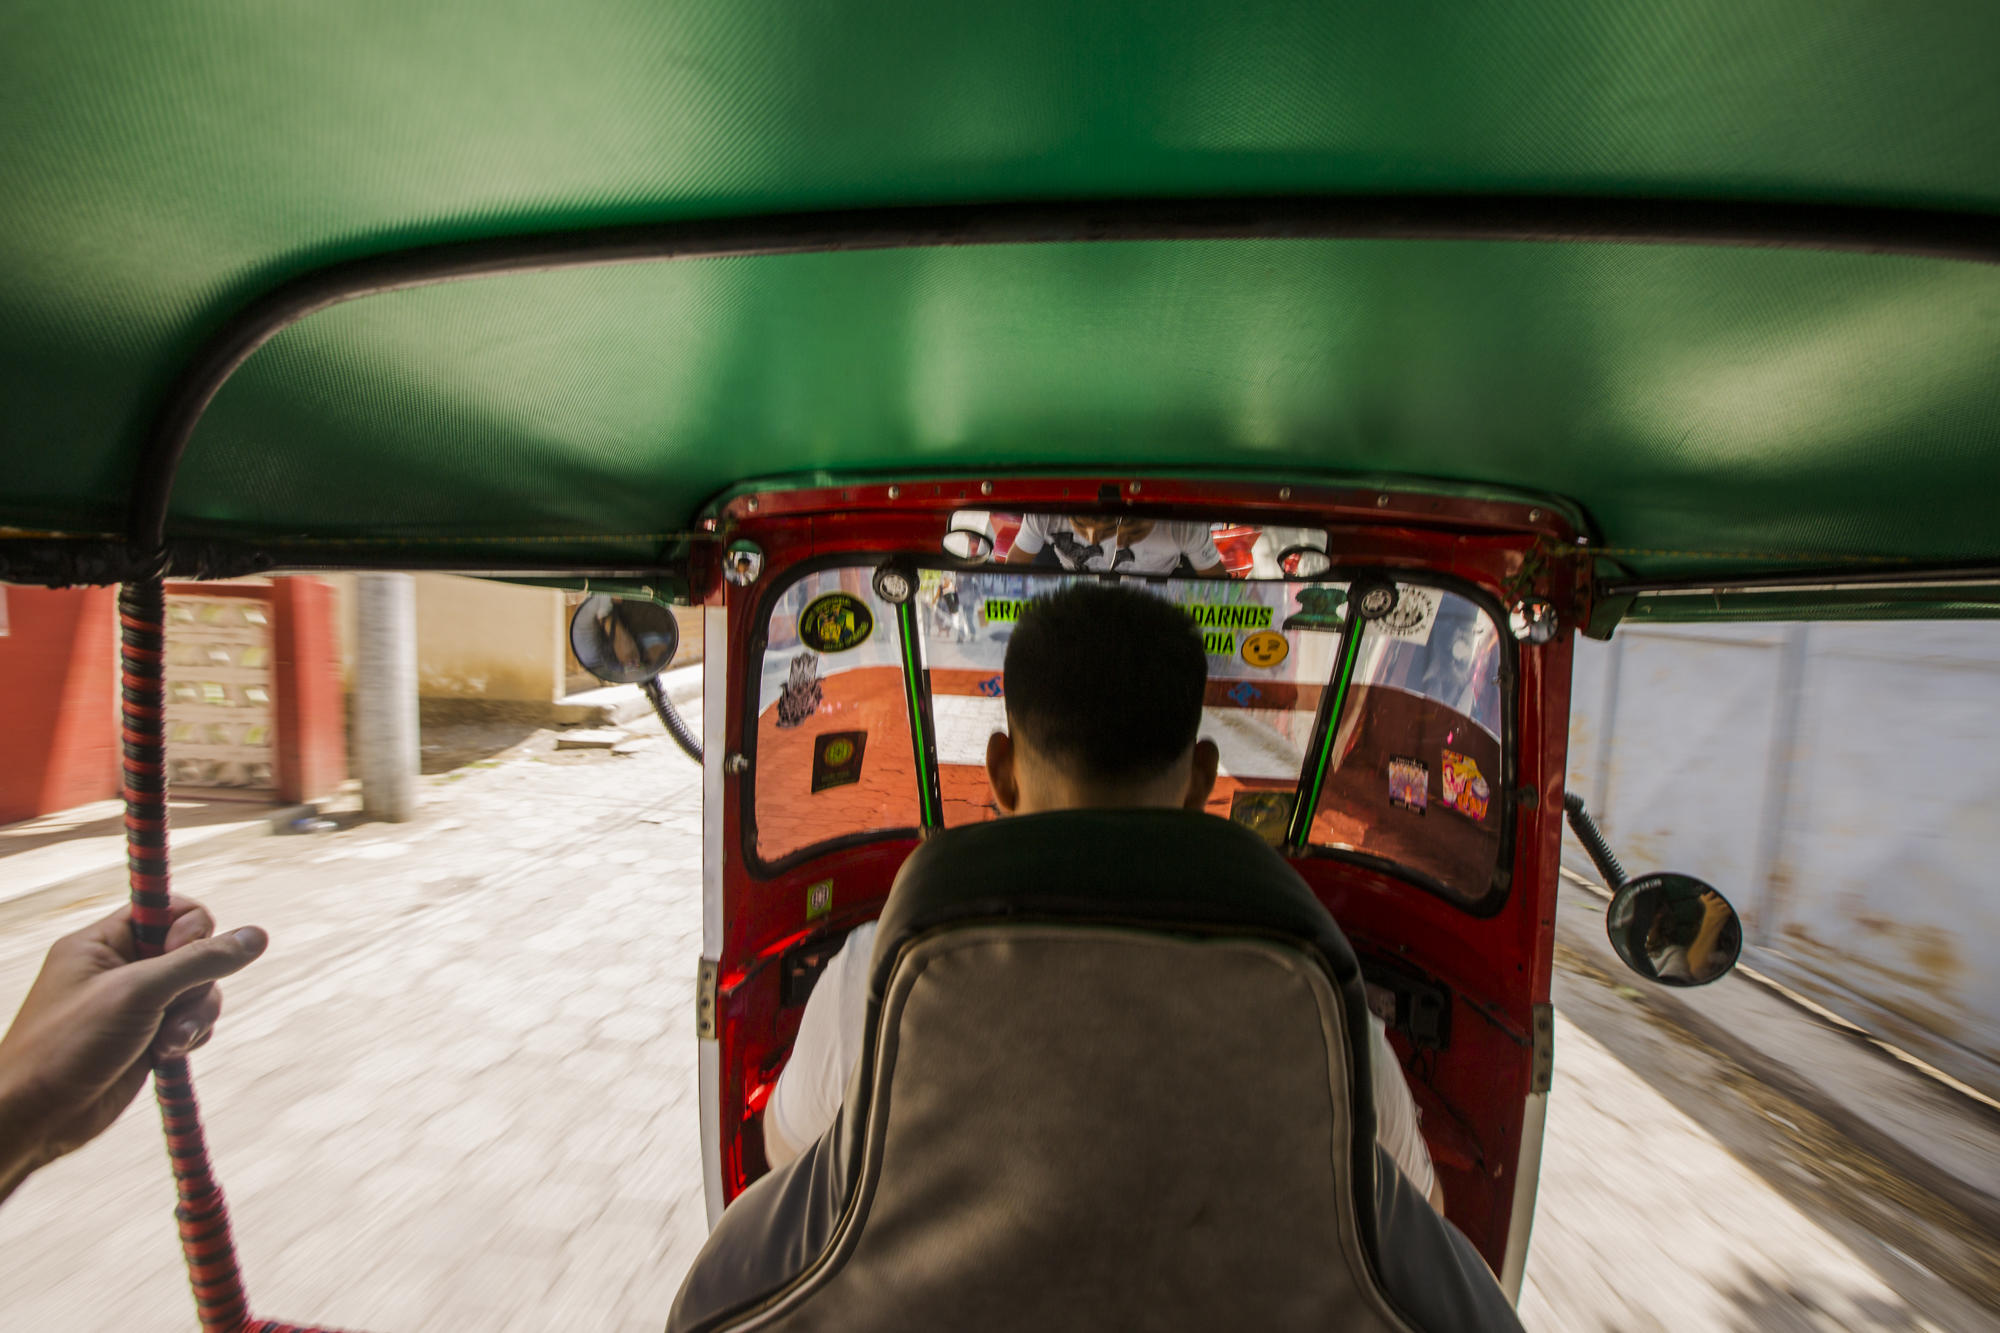 View from the back of a tuk tuk in San Pedro La Laguna, Guatemala. Tuk tuks are a common form of transportation in Guatemala. They are very convenient as they can be found on almost every street and they can fit through small alleyways.